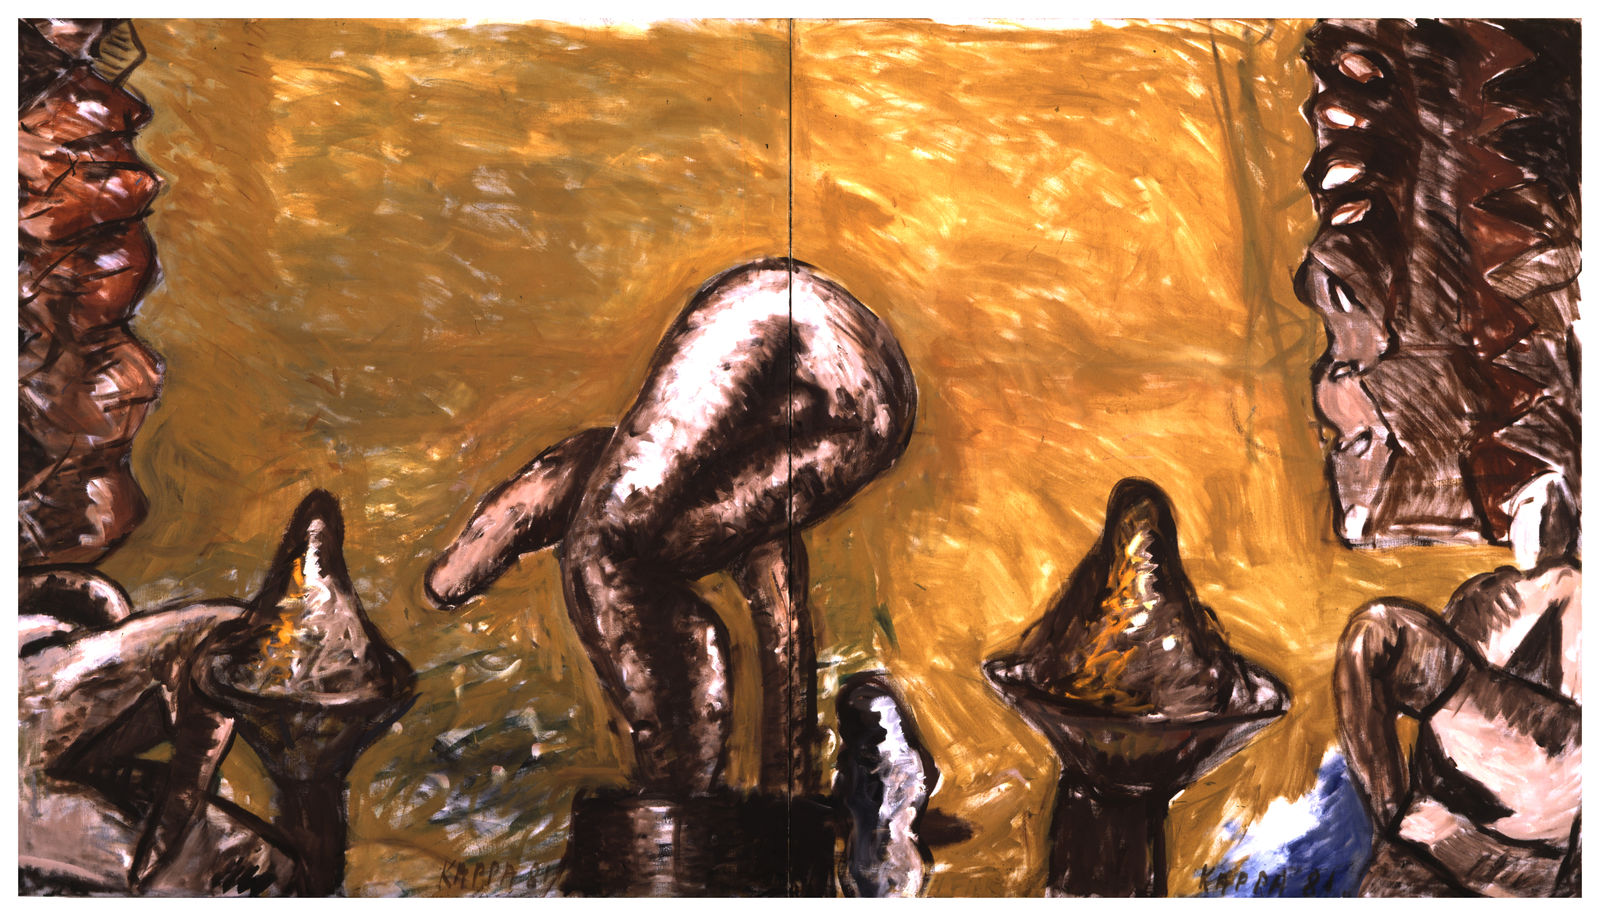 Klein Weihe , 1980, Oil on canvas, 49.21h x 53.14w in (125h x 135w cm), Private collection